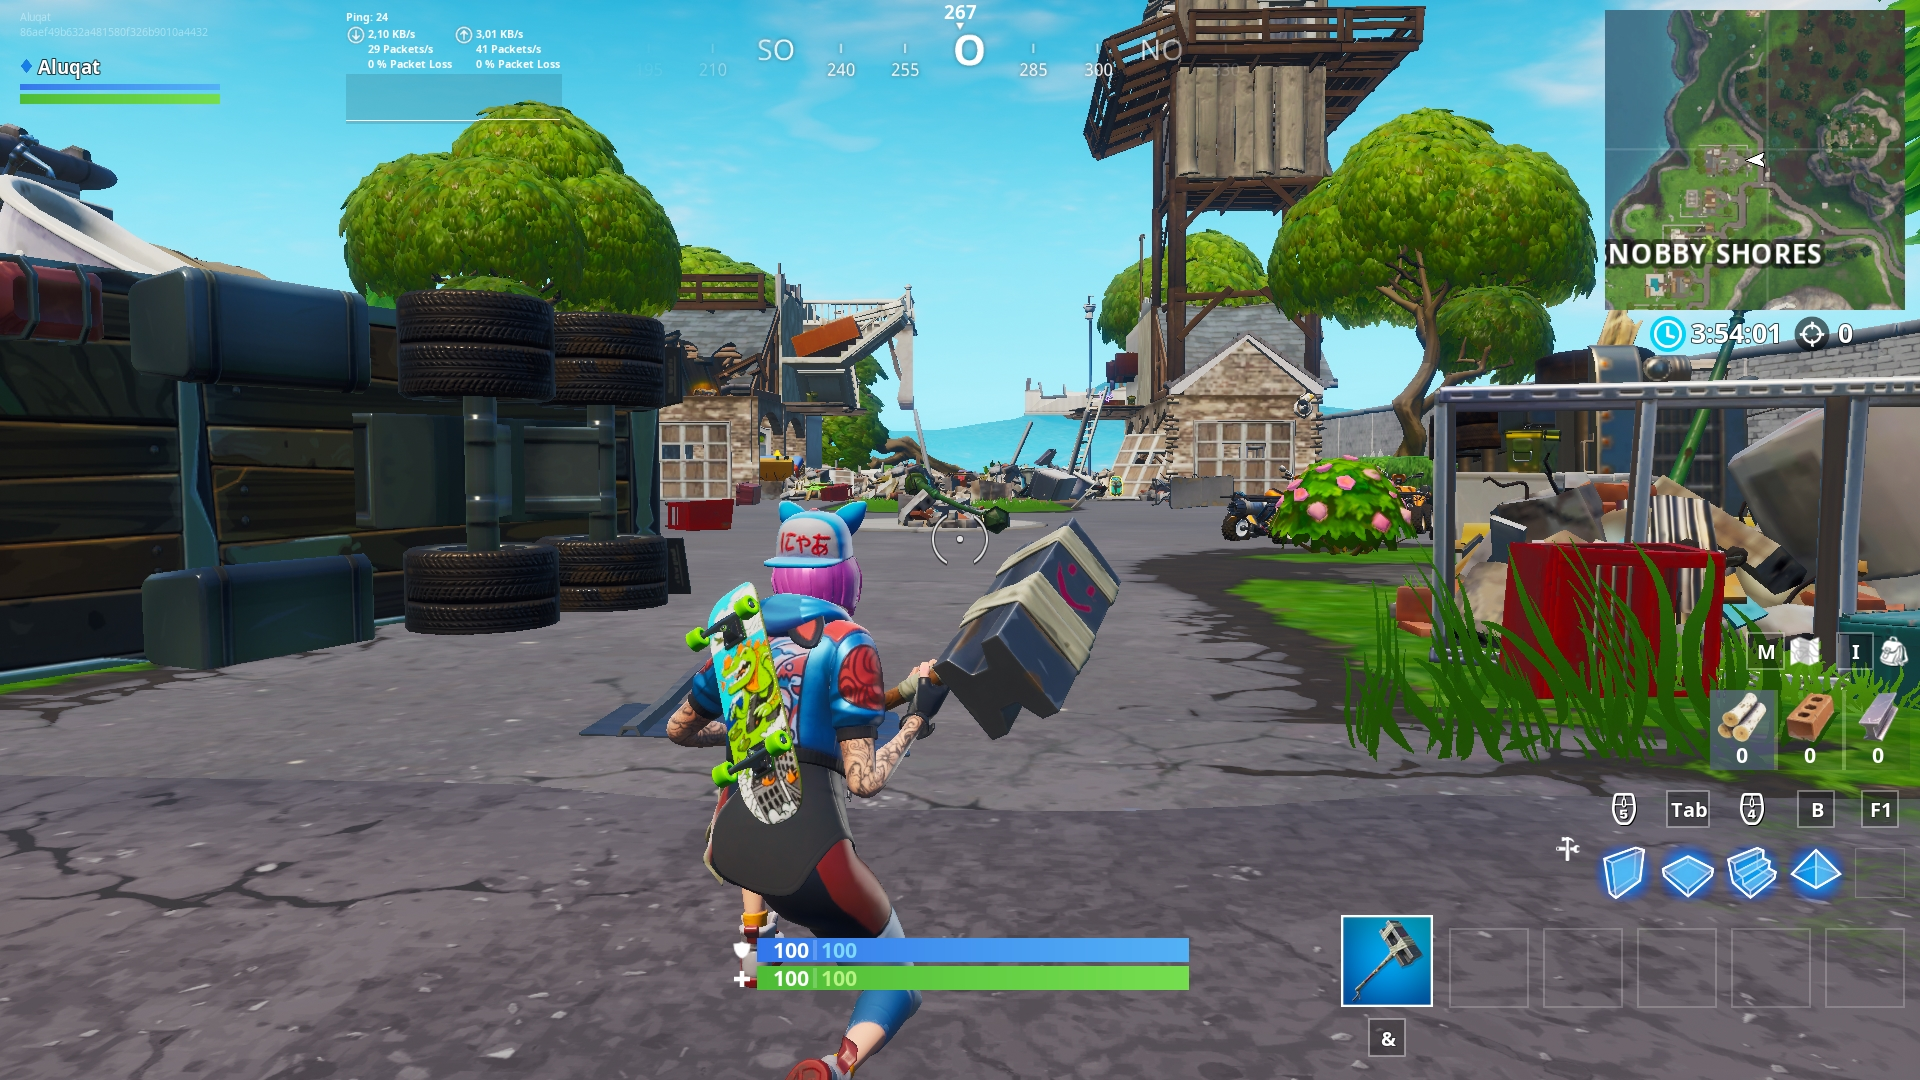 fortnite-maison-detruite-snobby-shores-monstre-polar-peak-patch-921